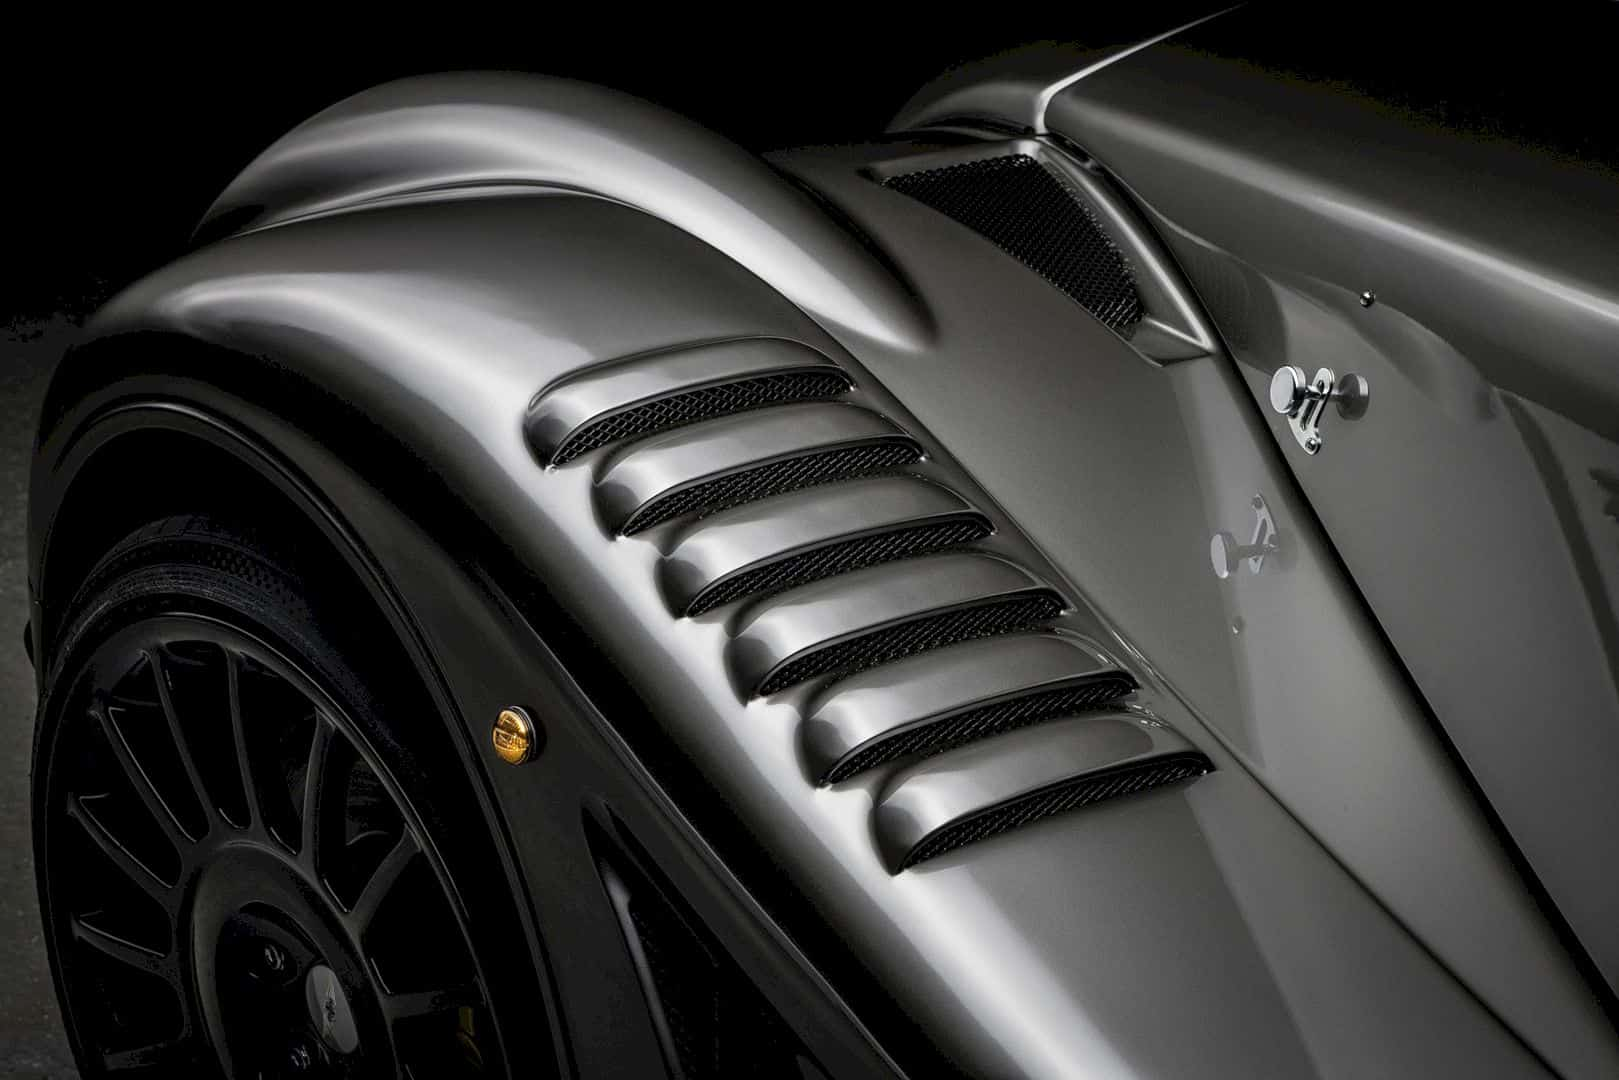 The Morgan Aero Gt 1